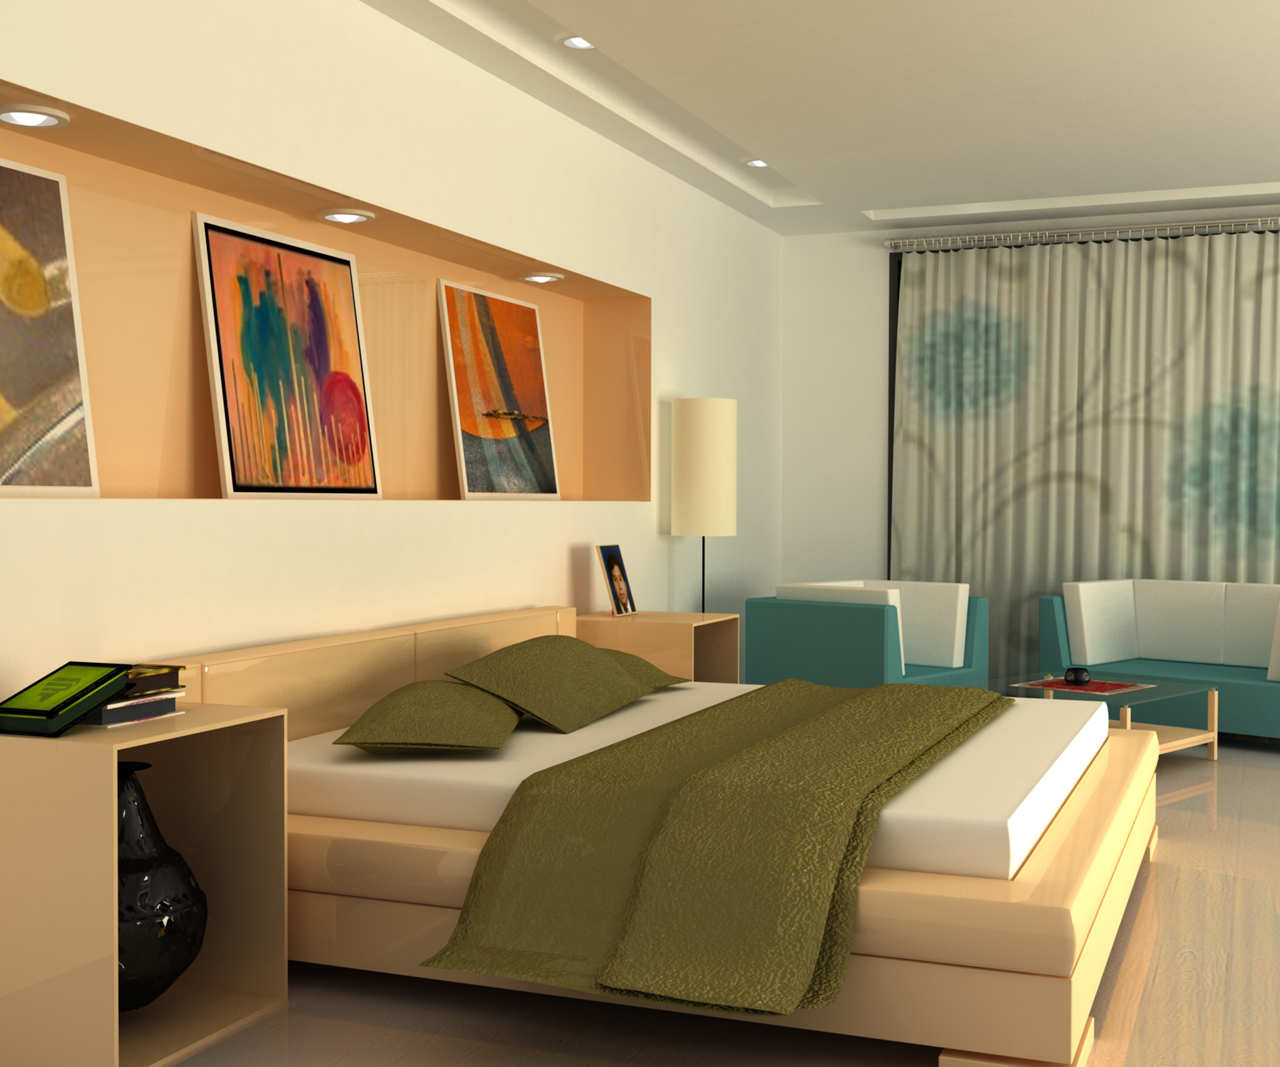 Online Bedroom Design design your own room free online Interior Exterior Plan Try To Design Your 3d Bedroom Online